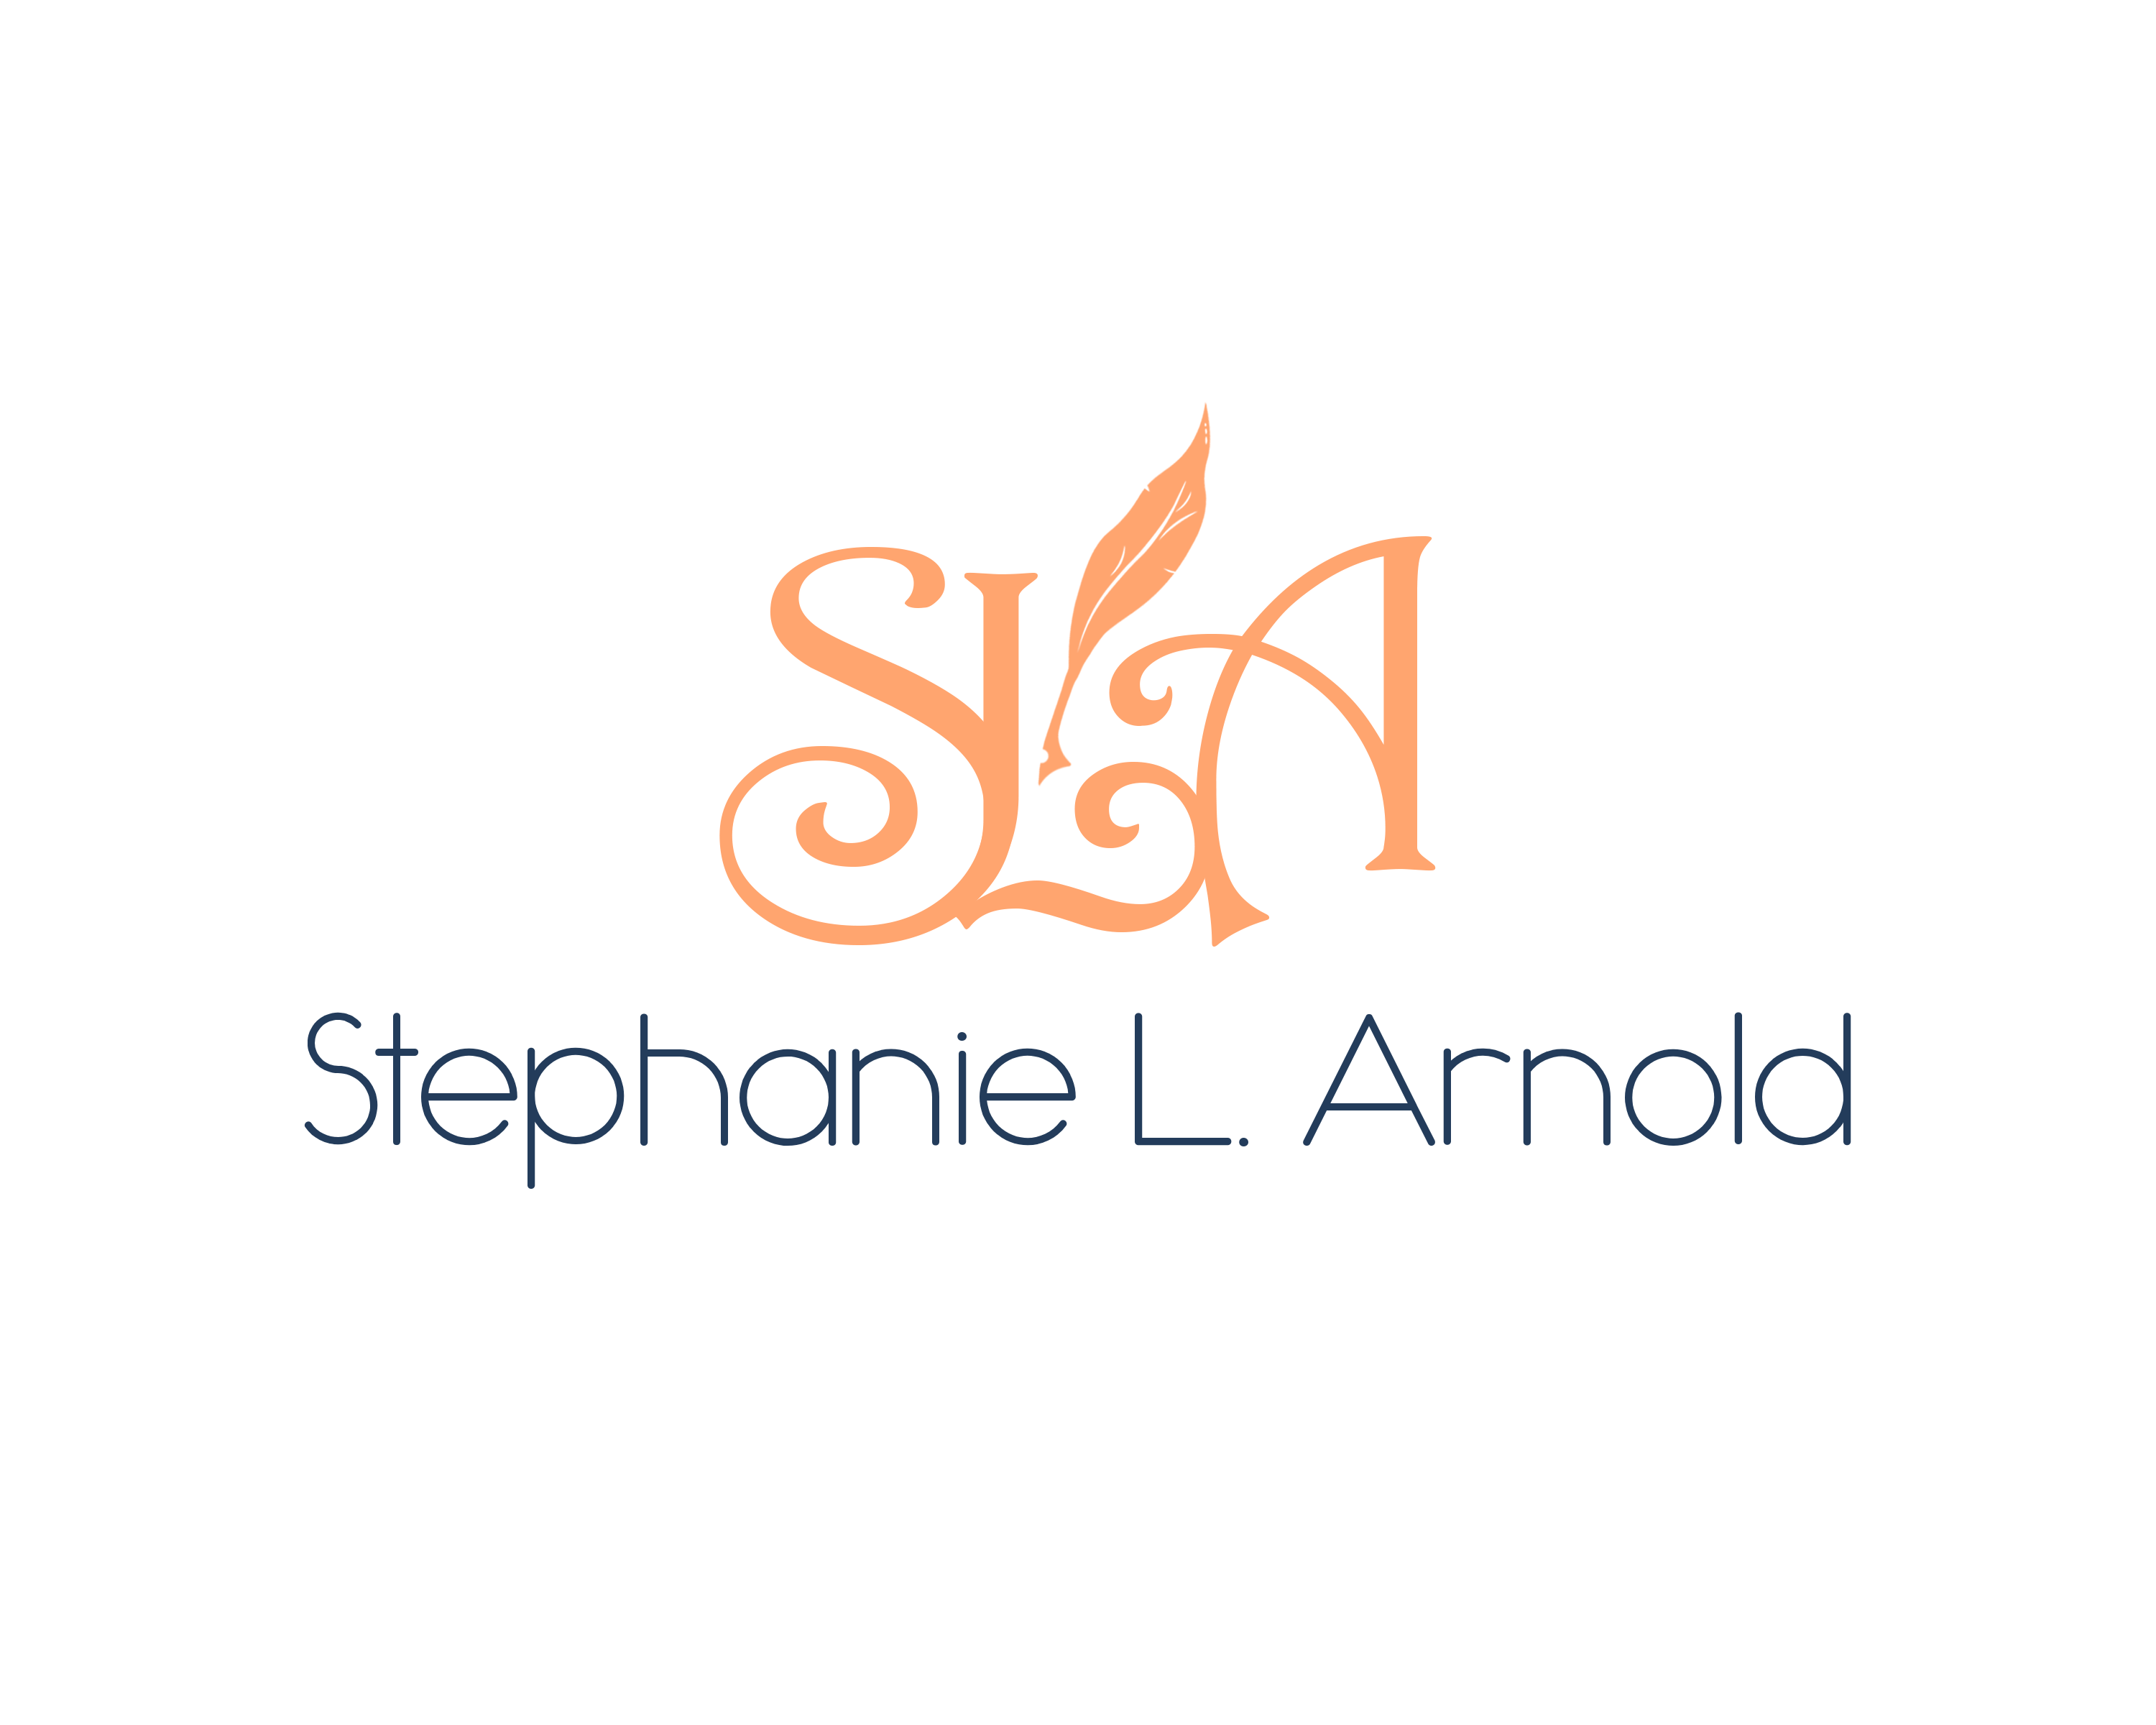 The official website of Stephanie L. Arnold